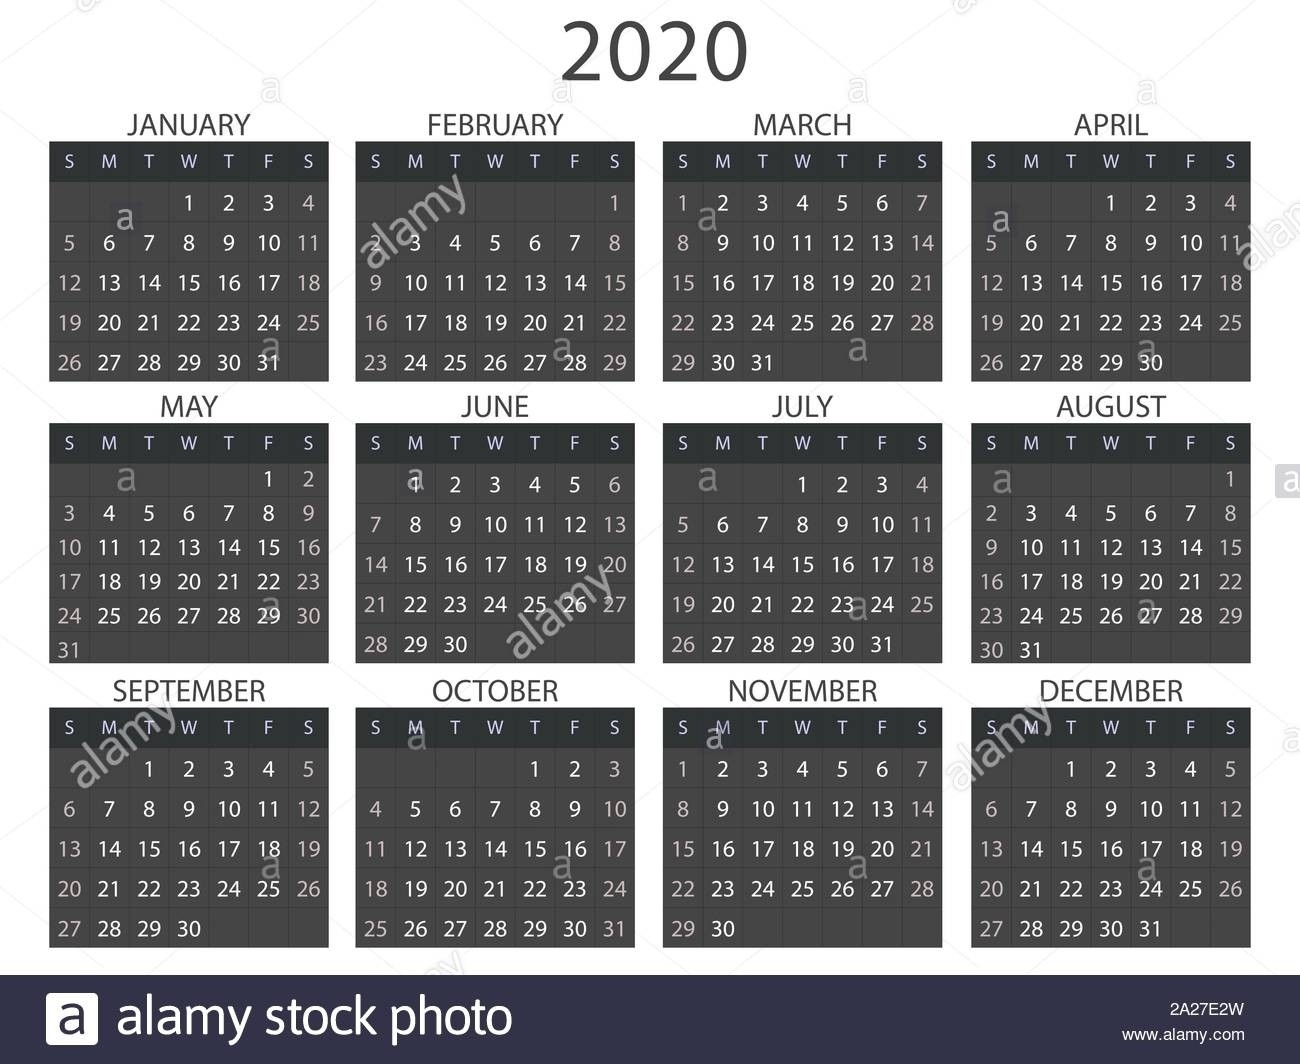 Simple Calendar Layout For 2020. Week Starts From Sunday-Blankcalendar Week Of 7/22